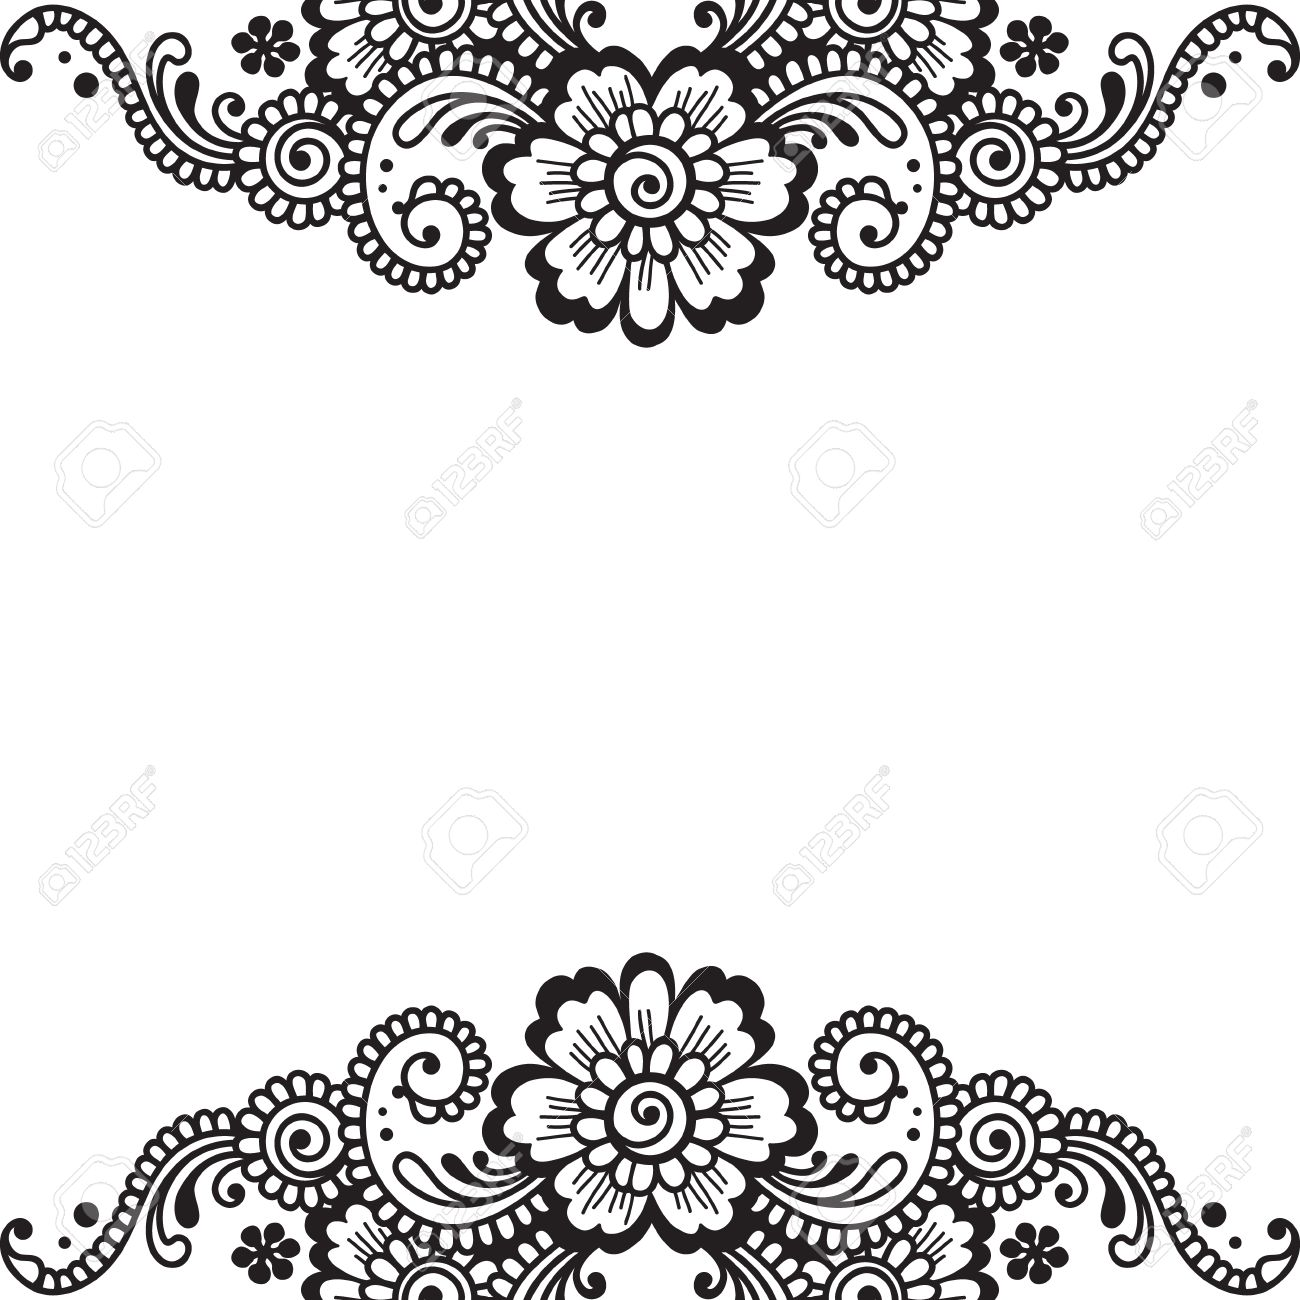 flower vector ornament corner royalty free cliparts vectors and stock illustration image 36374413 flower vector ornament corner